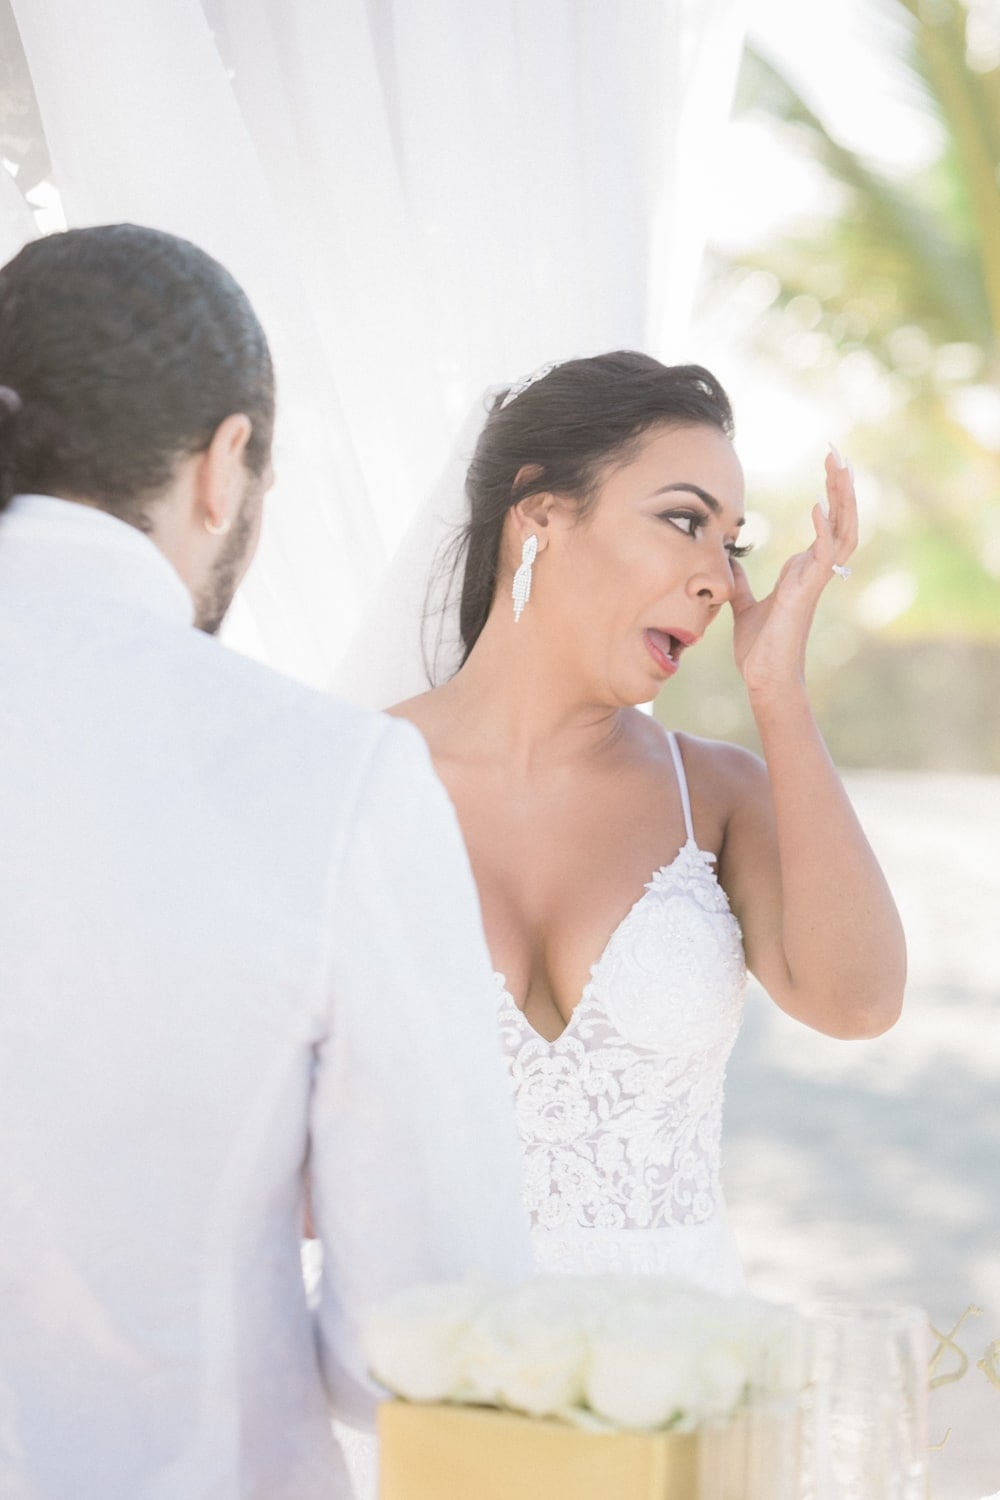 Bride wipes away tears as fiancé says his vows during beach wedding in Punta Cana.